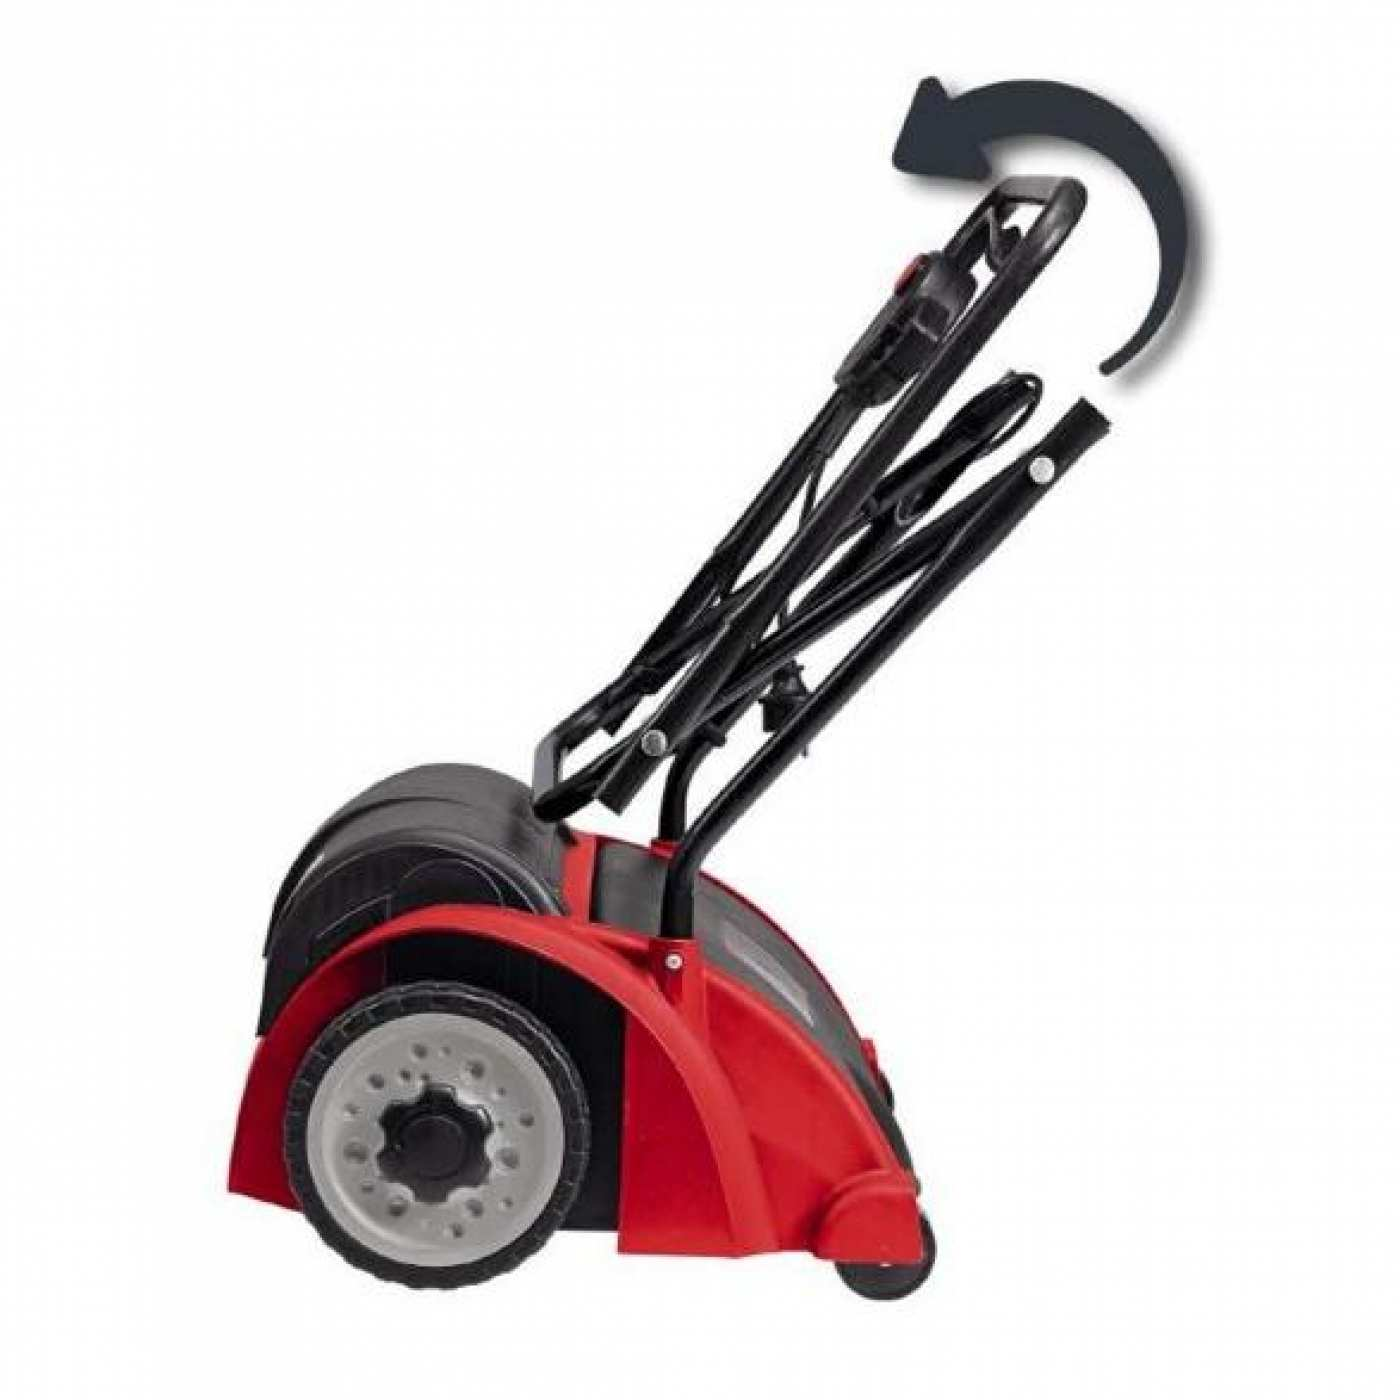 1200W 2 in 1 Electric Scarifier & Aerator(Factory Second)